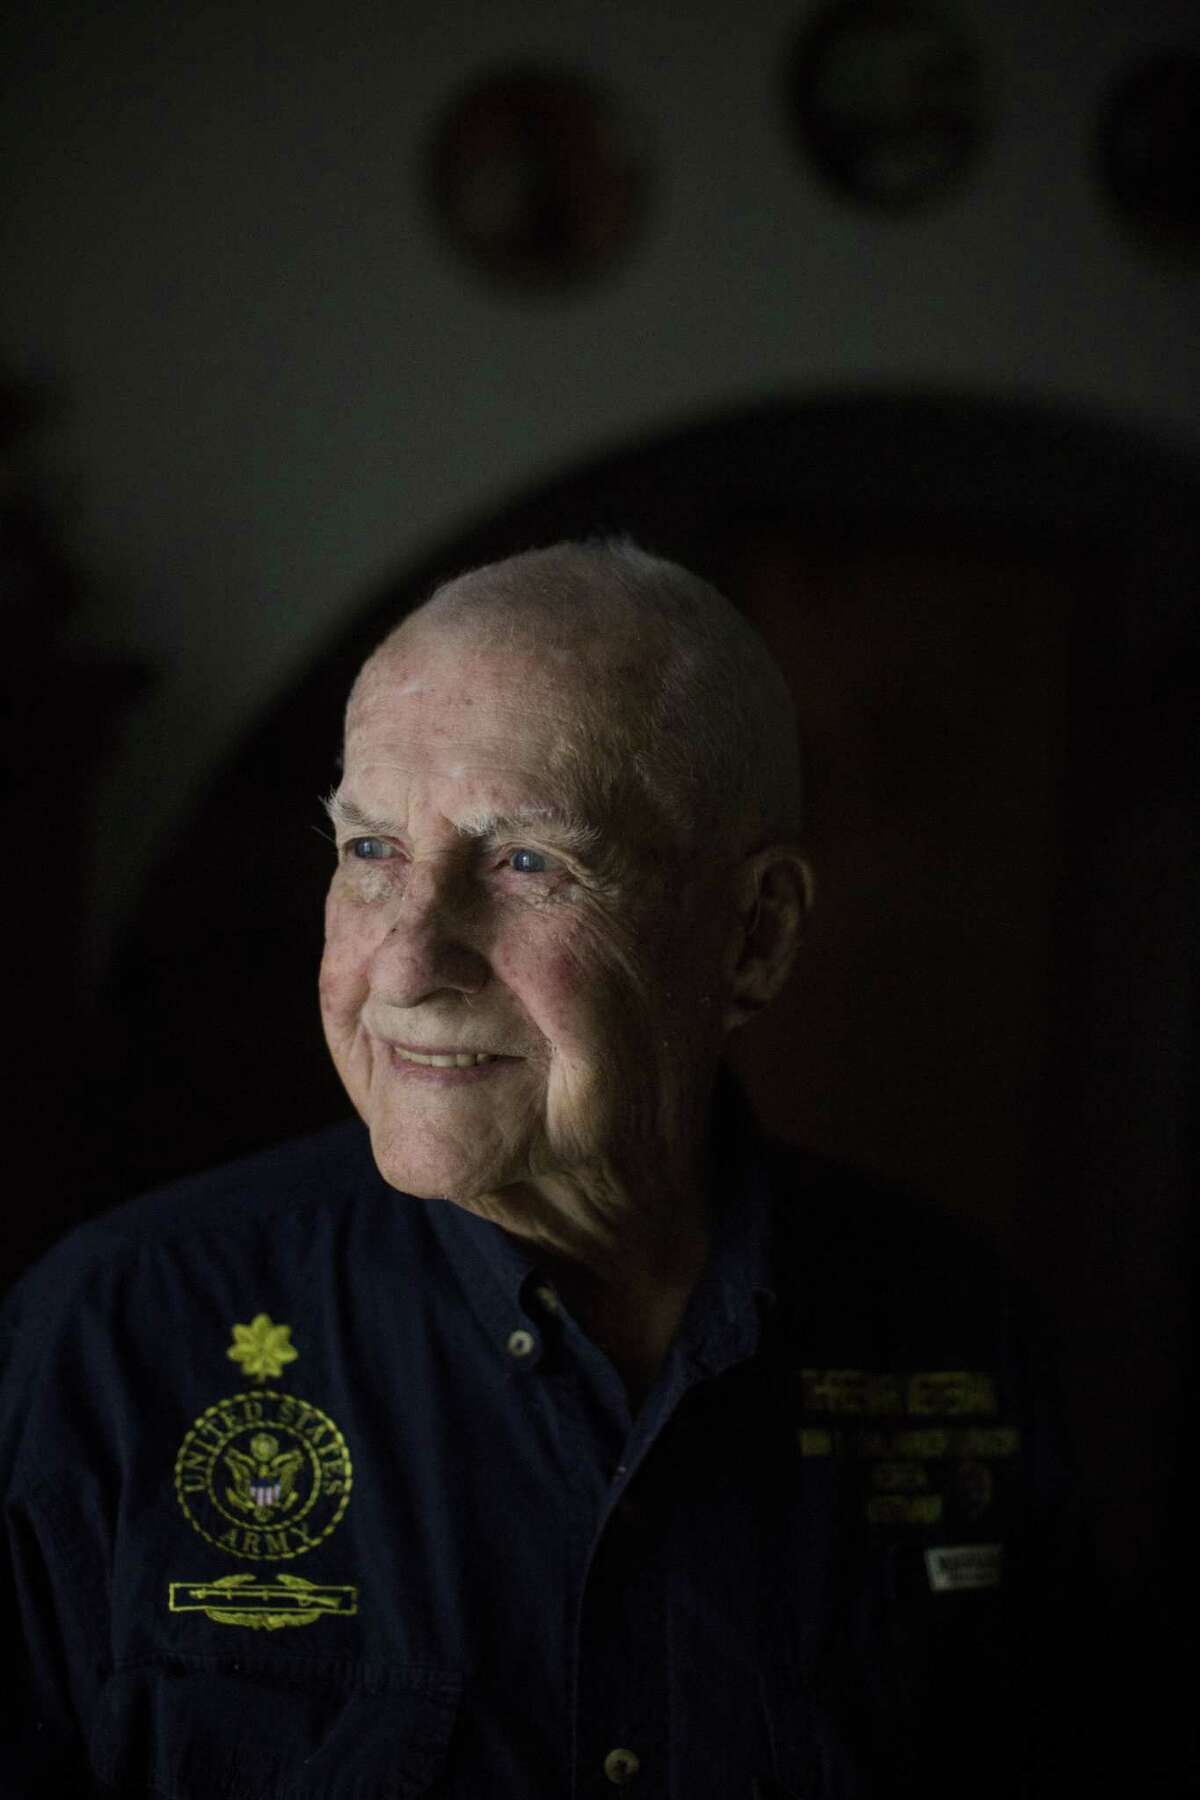 Virgil Lee Ward, a 95-year-old veteran who was stationed in Hawaii during the attack on Pearl Harbor, stands for a portrait in his home in San Antonio, Texas on December 1, 2016.